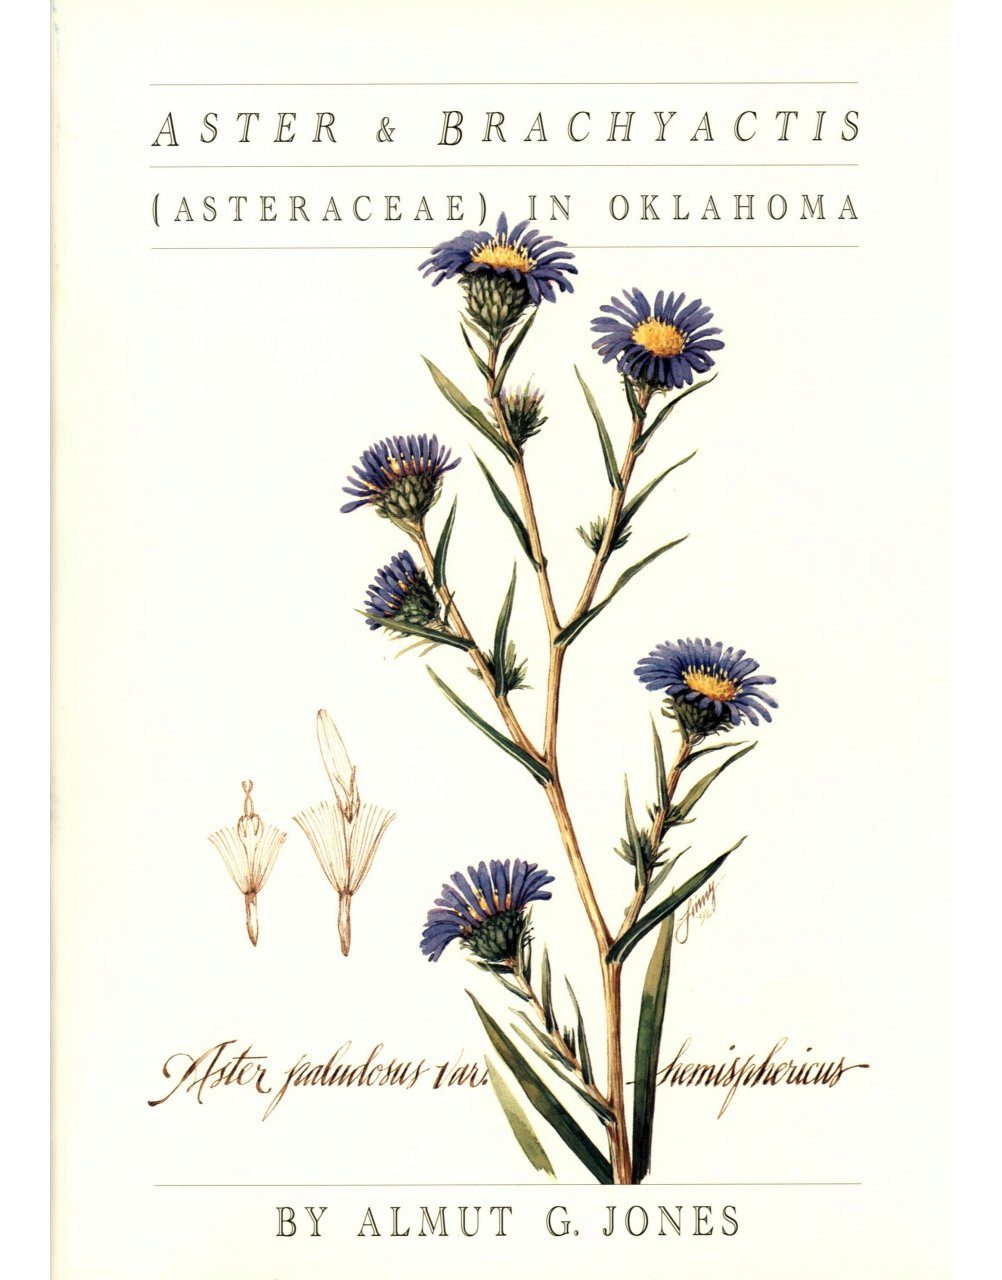 Aster and Brachyactis (Asteraceae) in Oklahoma